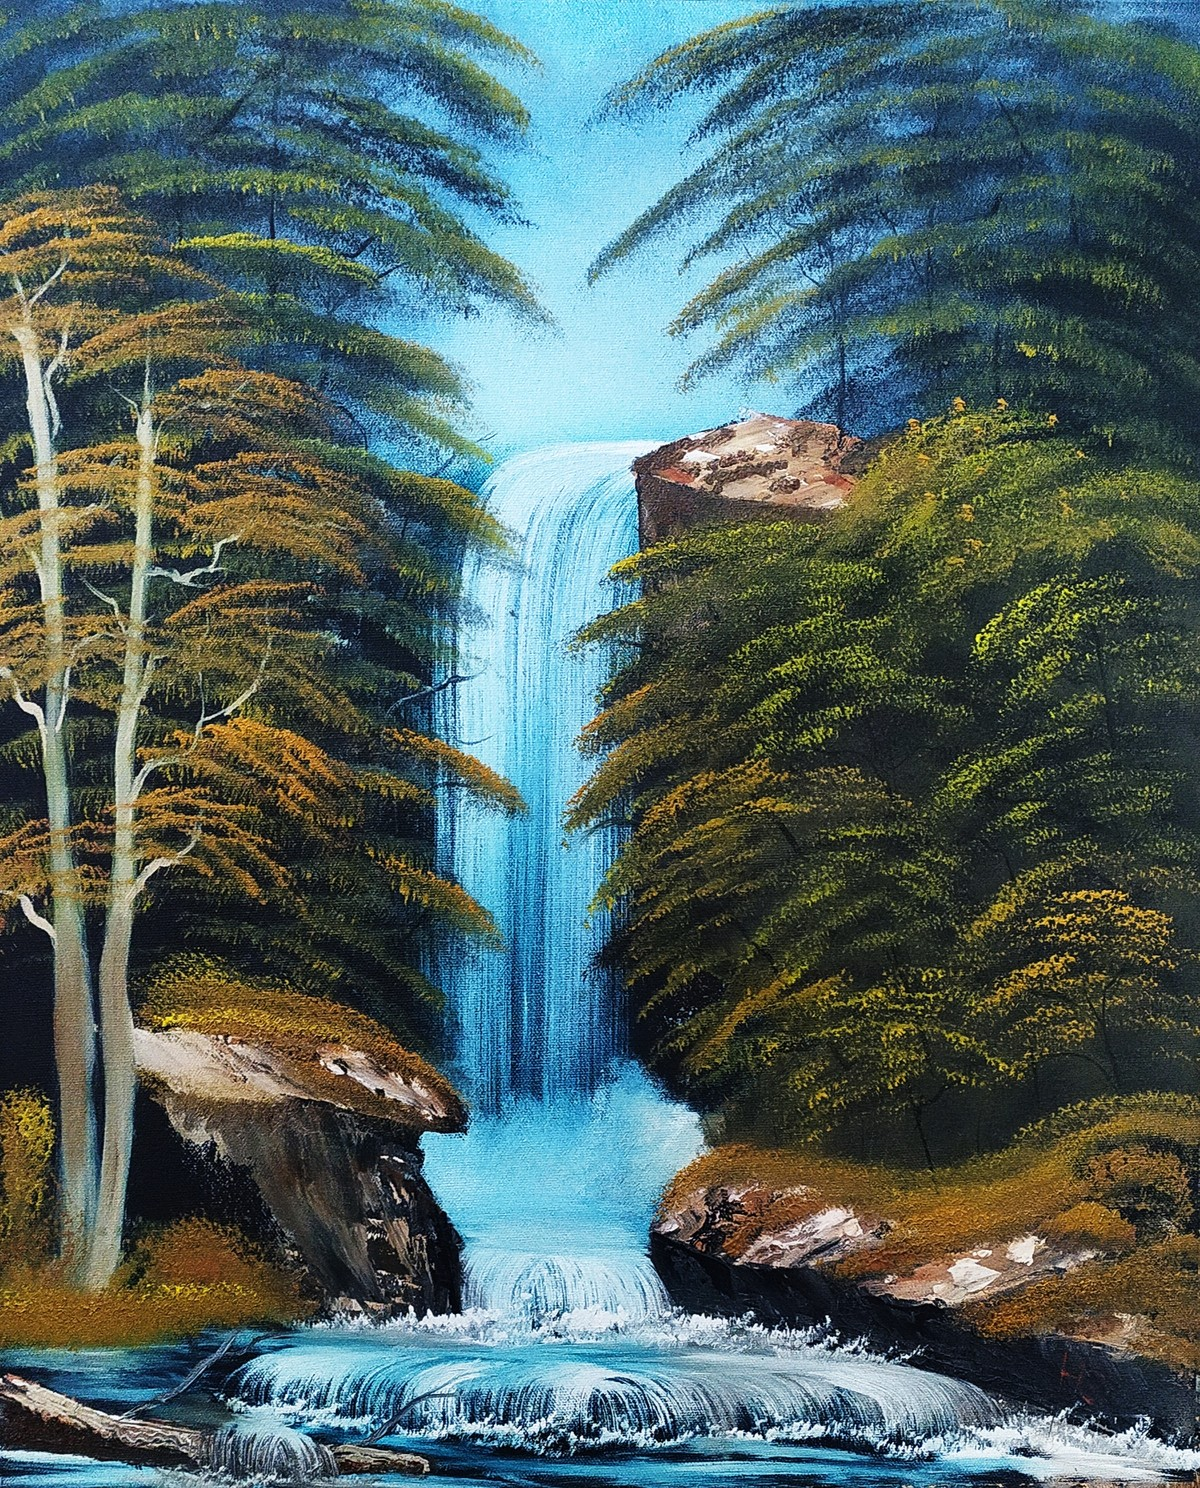 The Great Waterfall by Hemant Verma, Painting, Oil on Canvas, Outer Space color